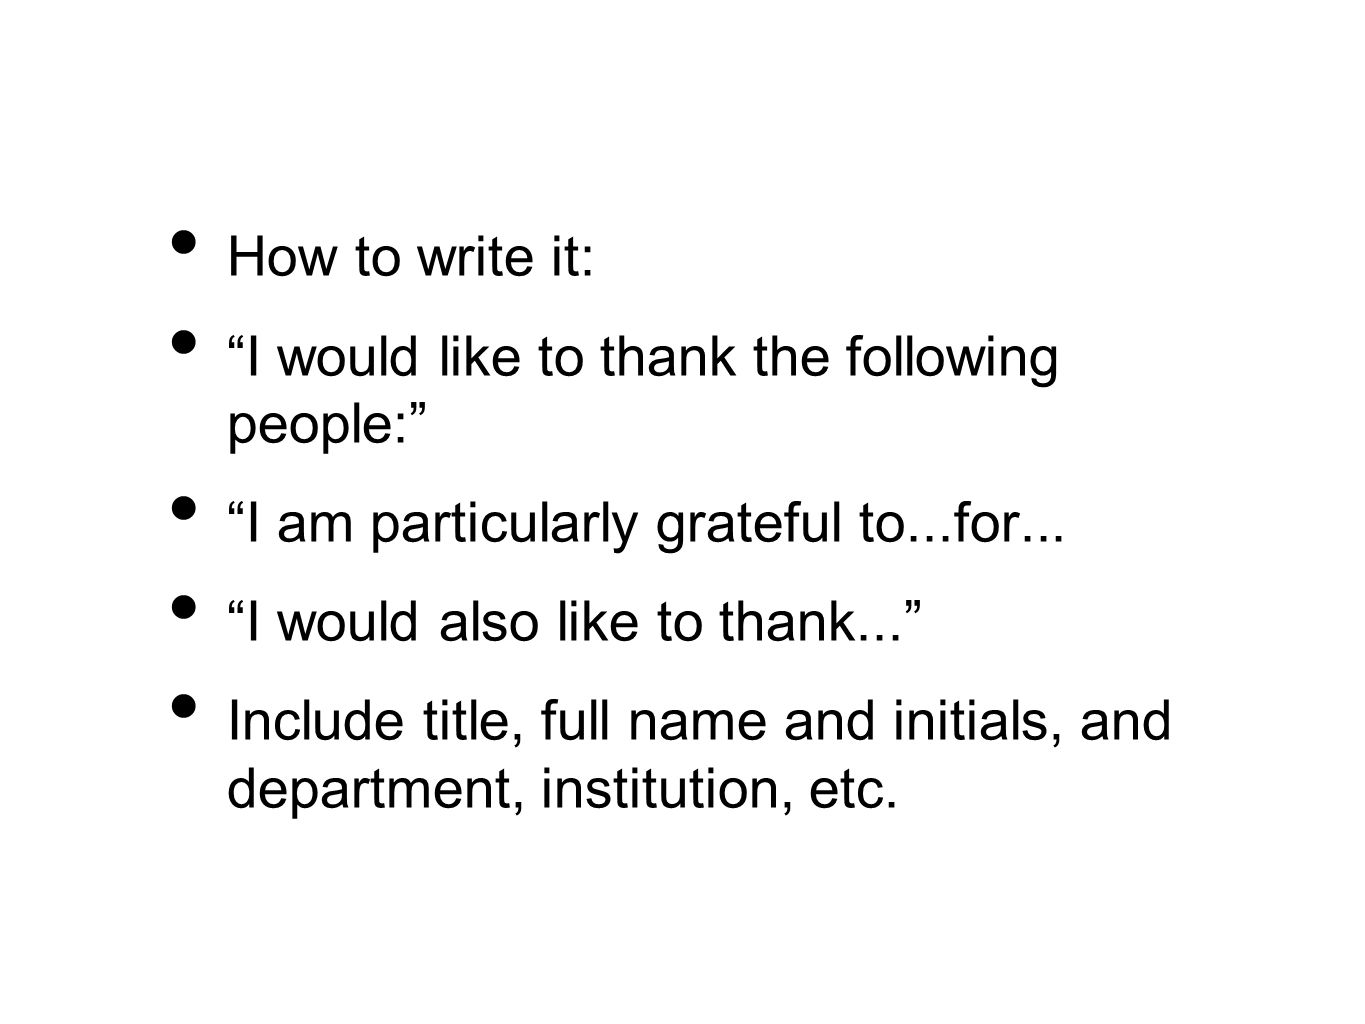 How to write it: I would like to thank the following people: I am particularly grateful to...for...